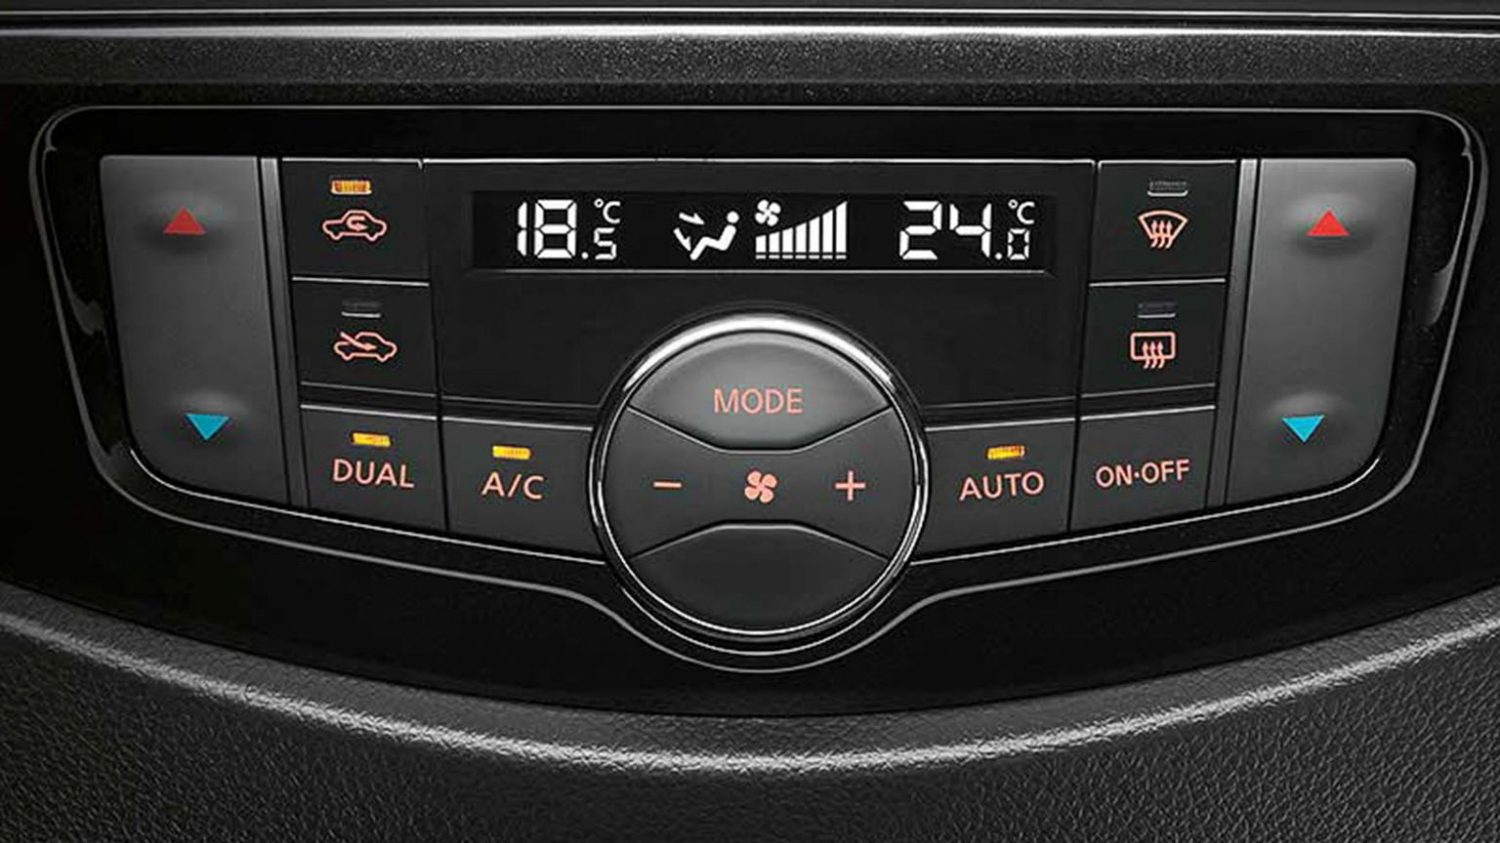 Nissan Navara dual-zone climate control system